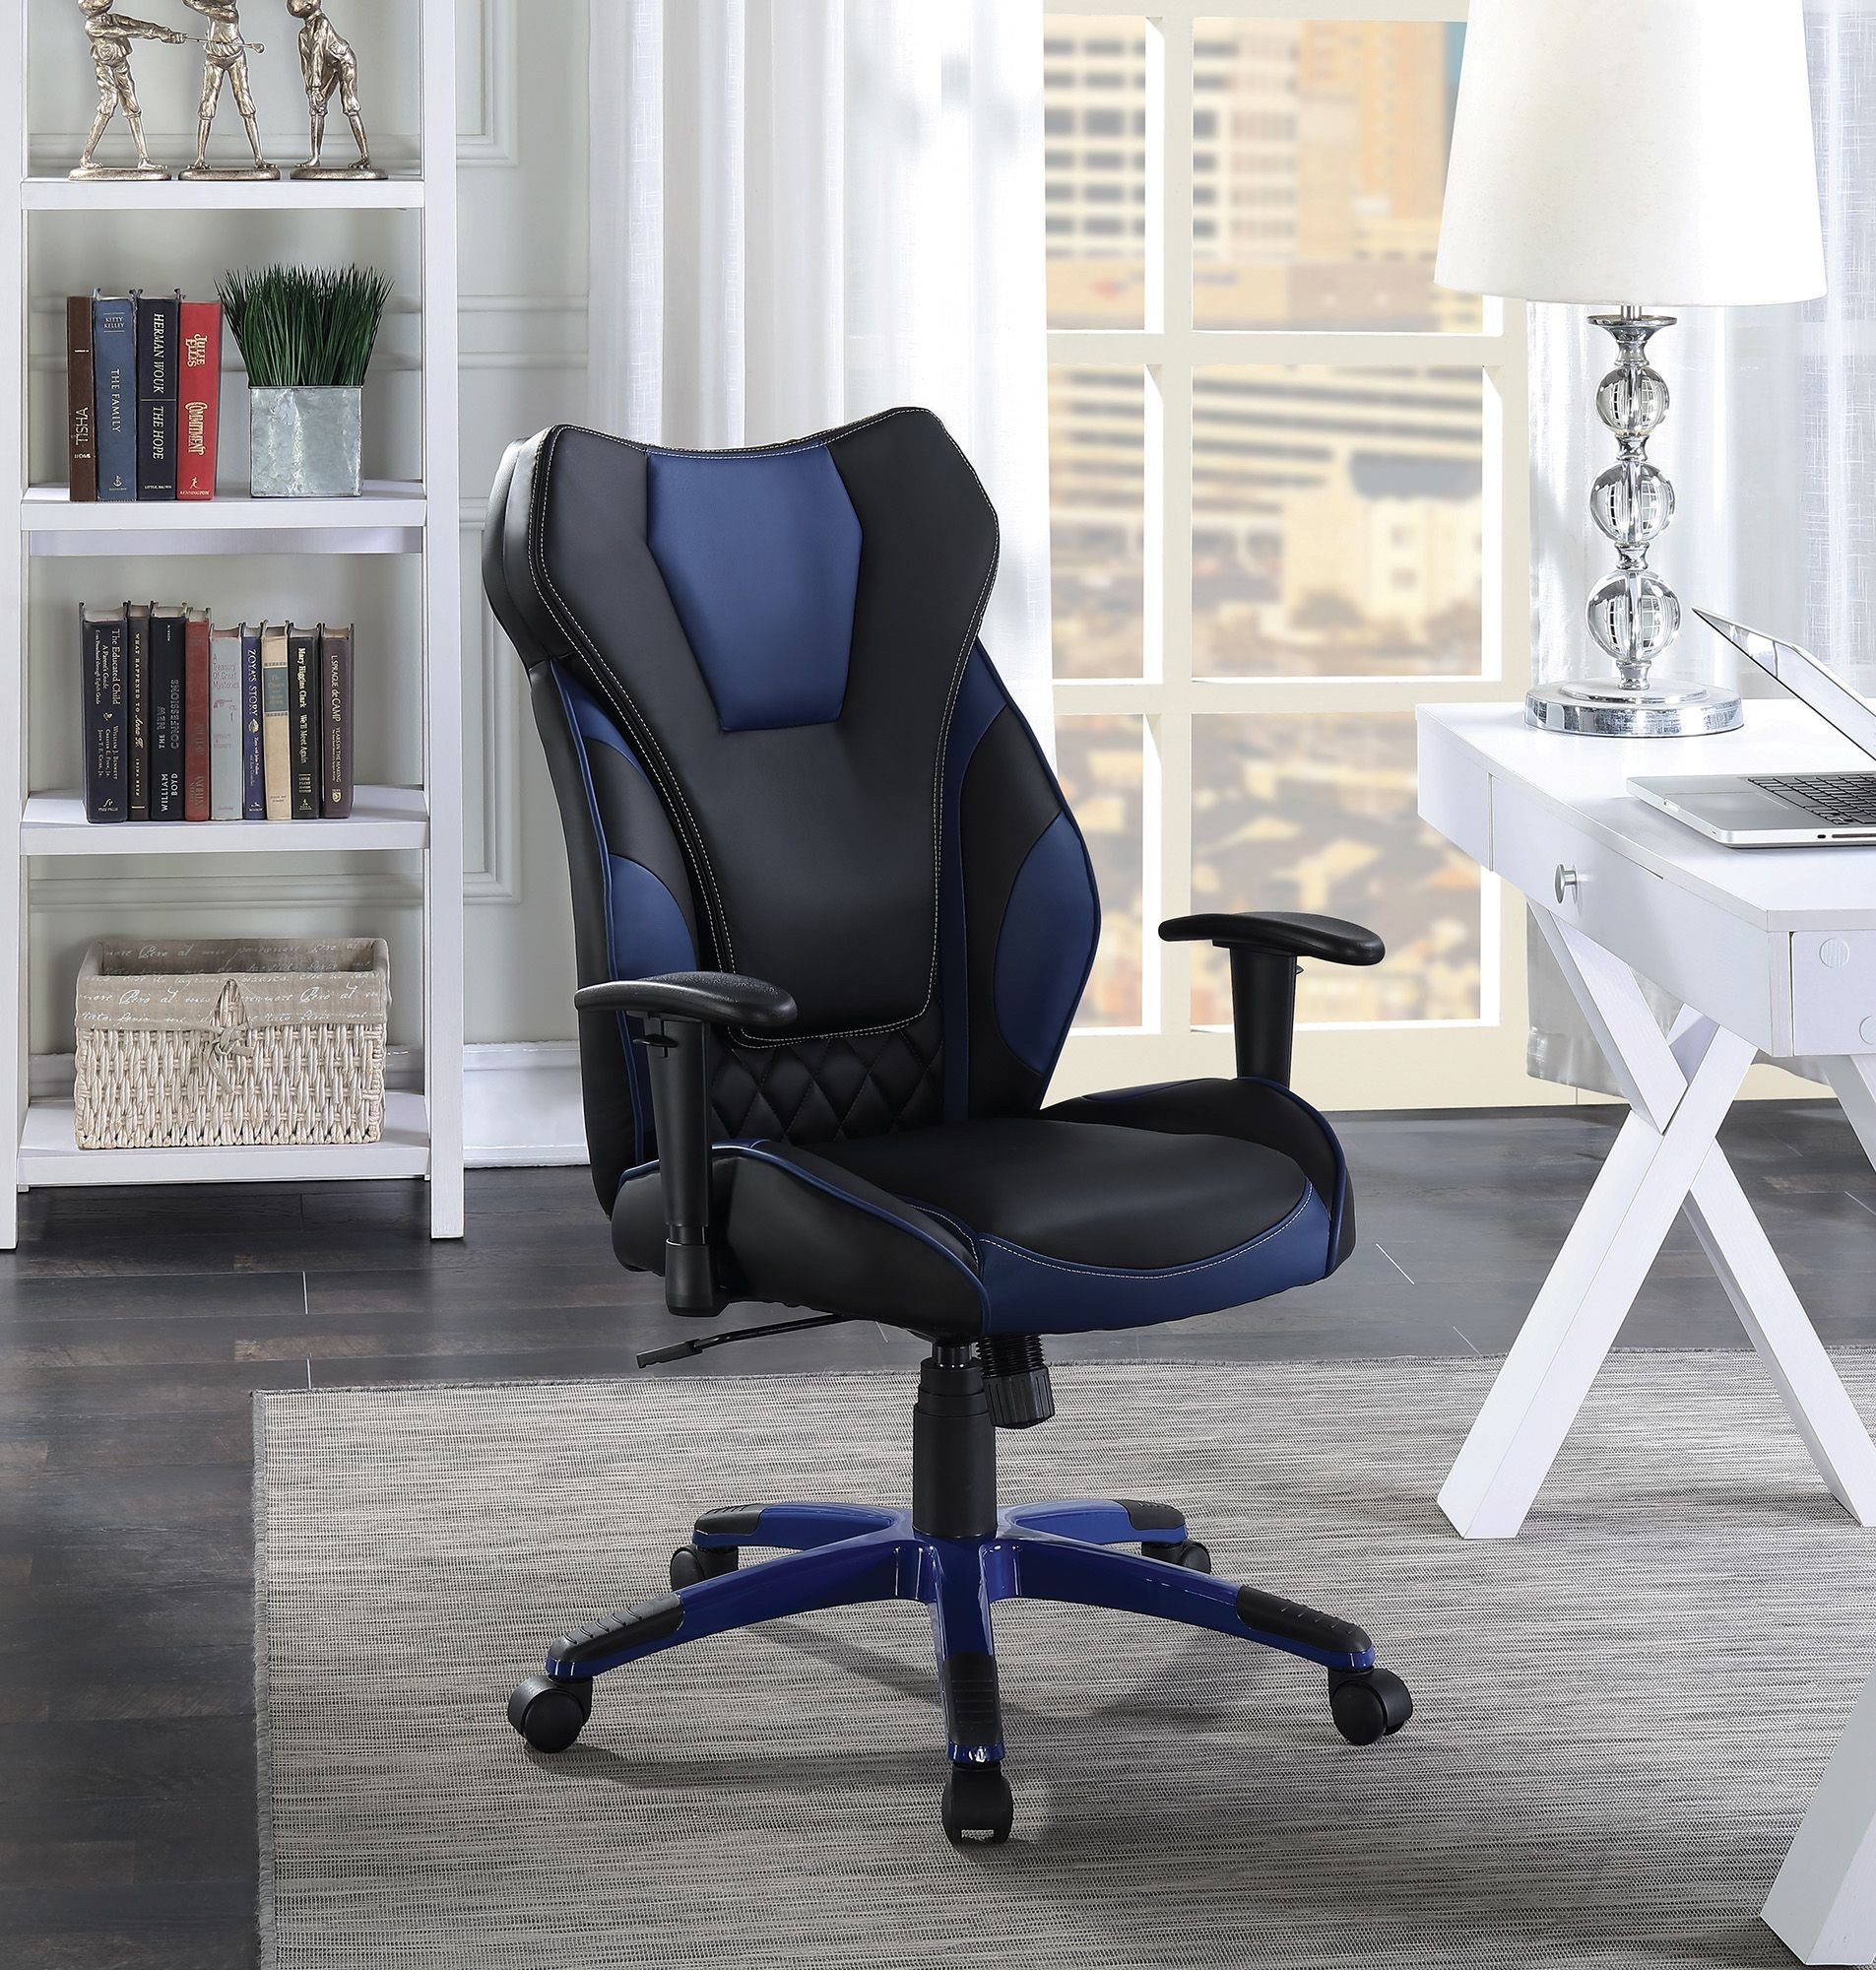 Blue Office Chair Black And Blue Office Chair From Coaster Coleman Furniture